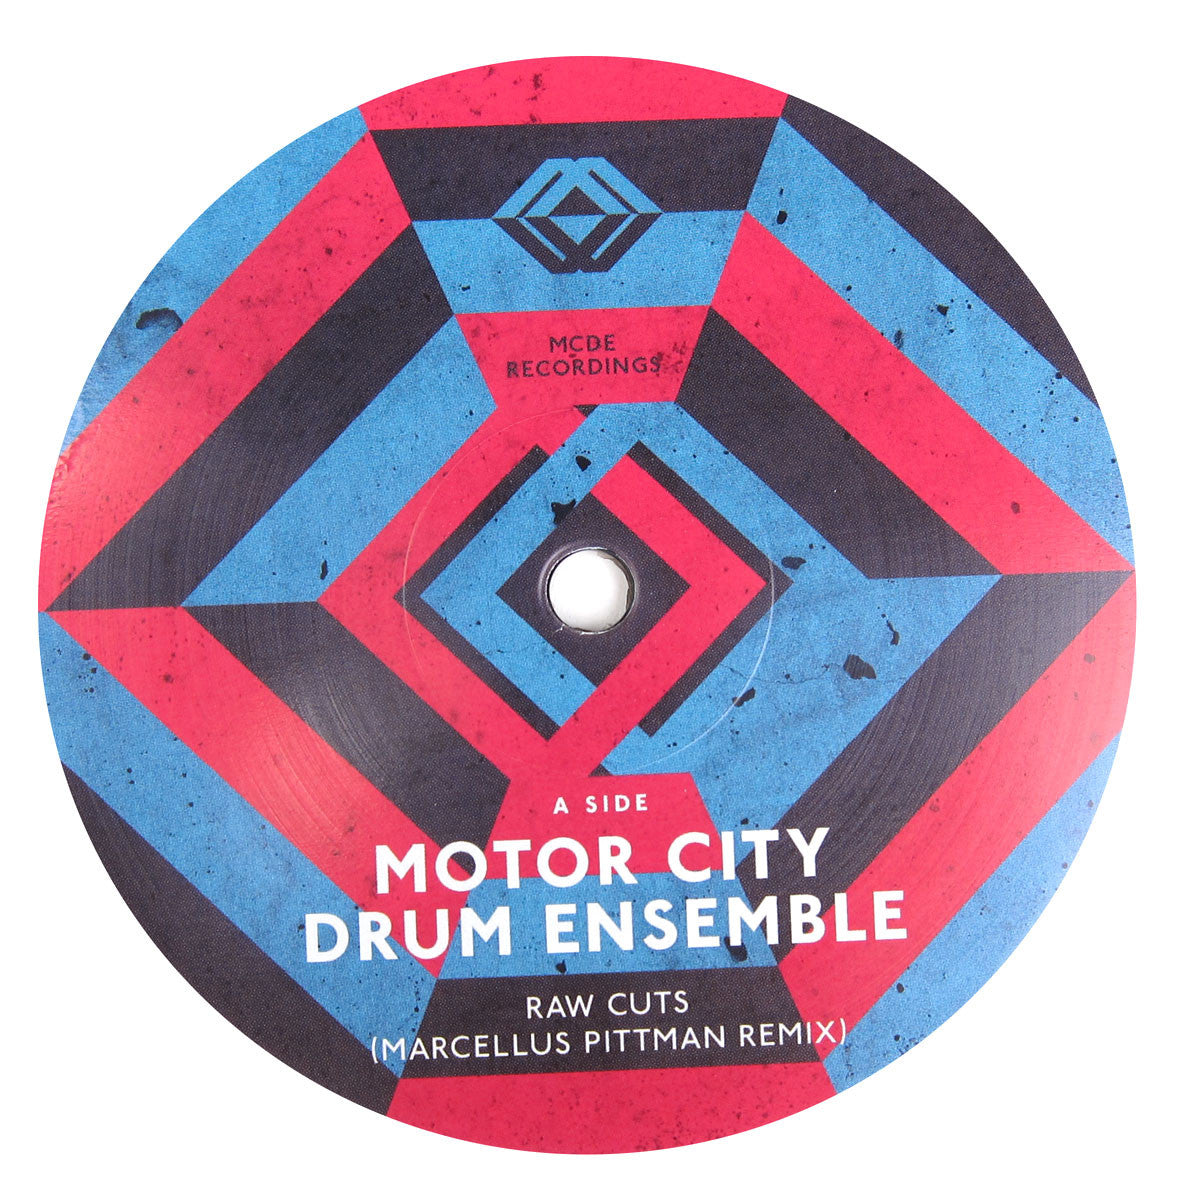 Motor City Drum Ensemble: Raw Cuts RMX (Mike Huckaby, Recloose) Vinyl 12""